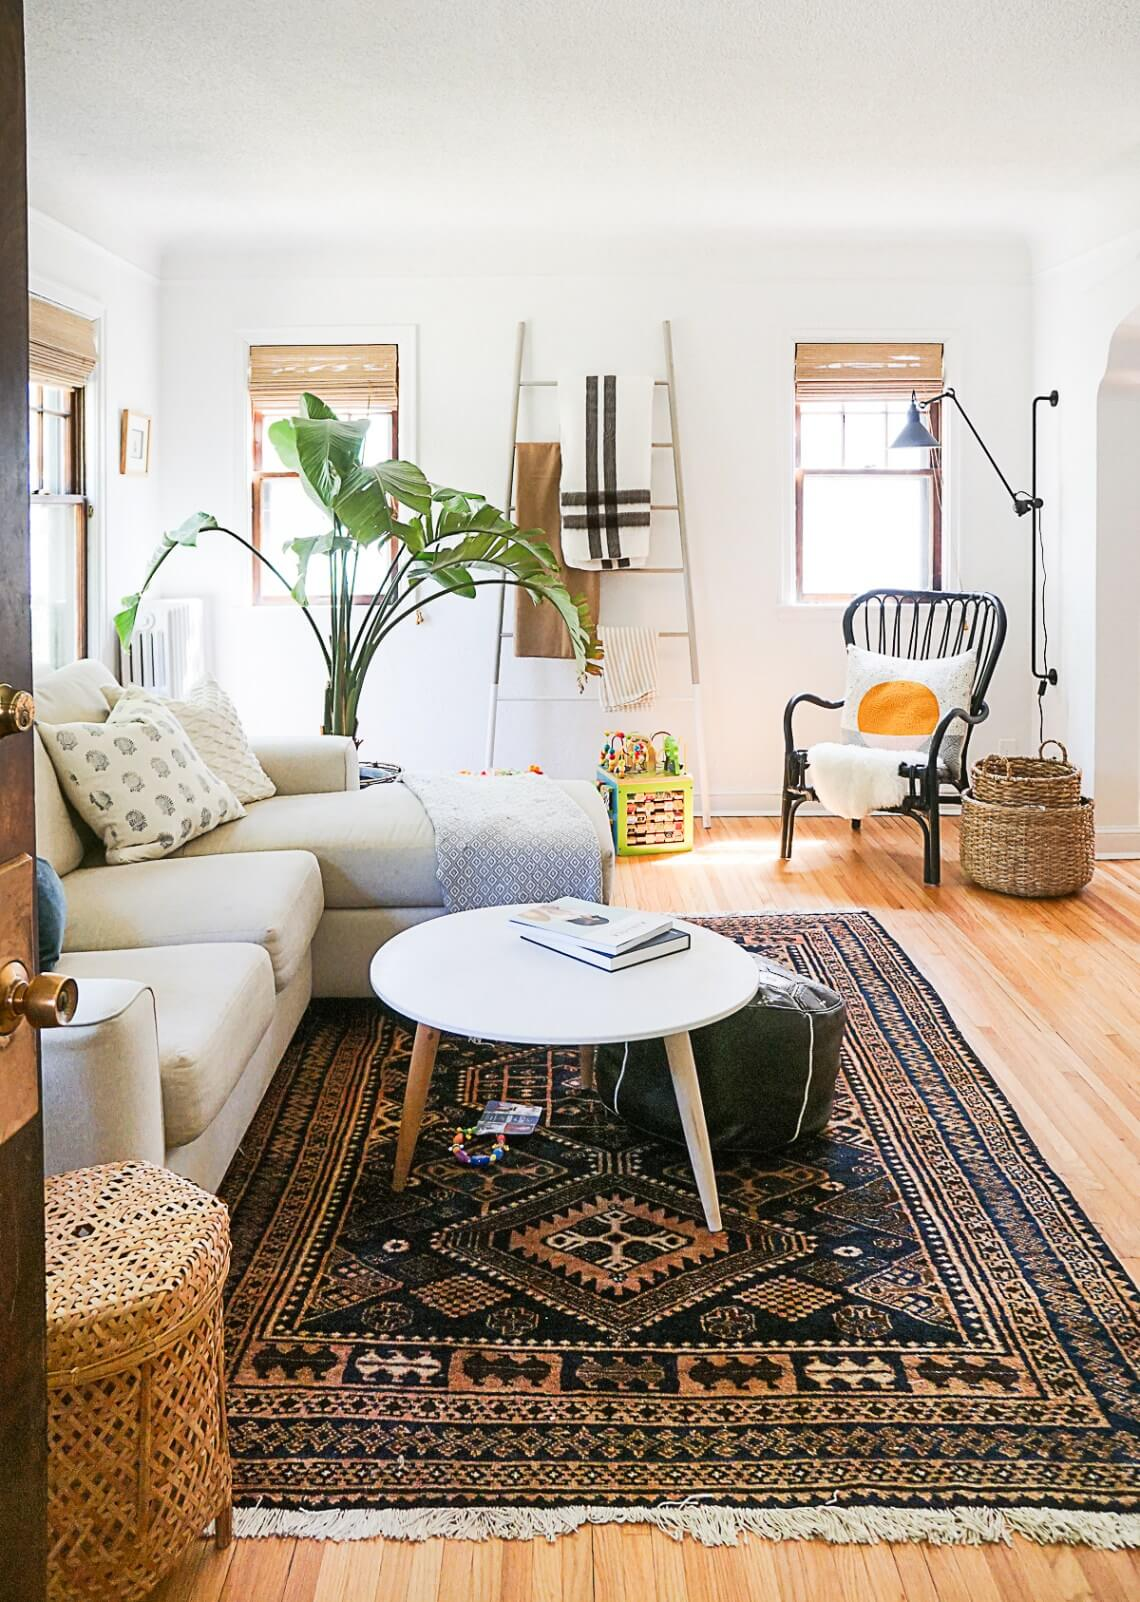 Light and Airy with a Southwestern Flair